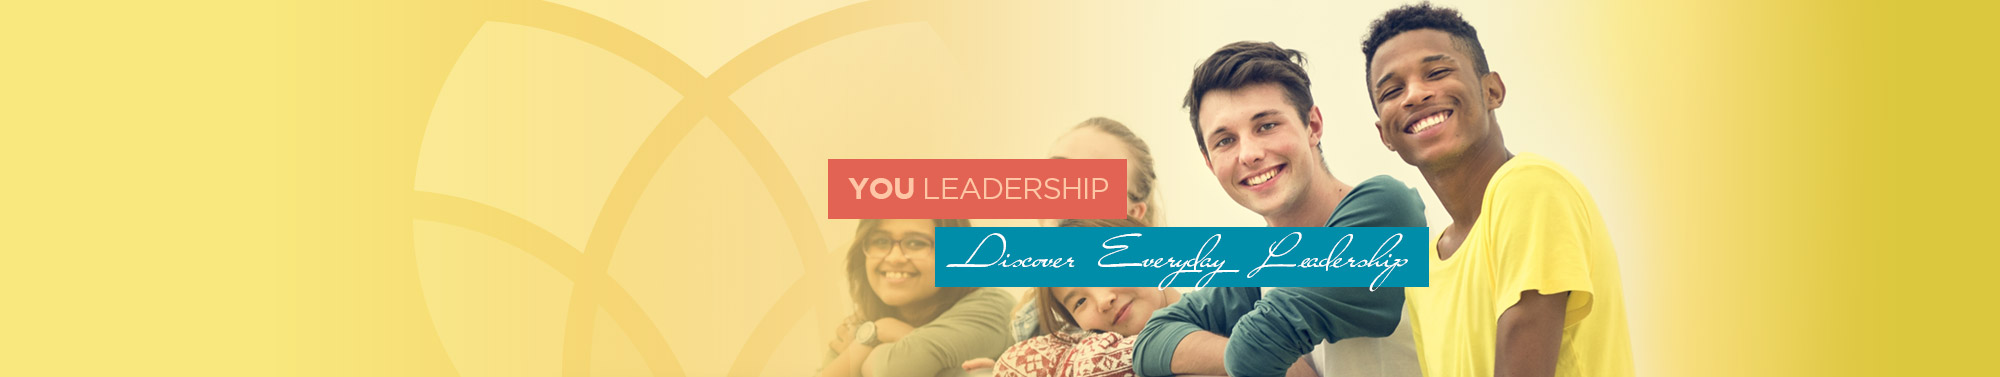 YOU Leadership - Discover Everyday Leadership